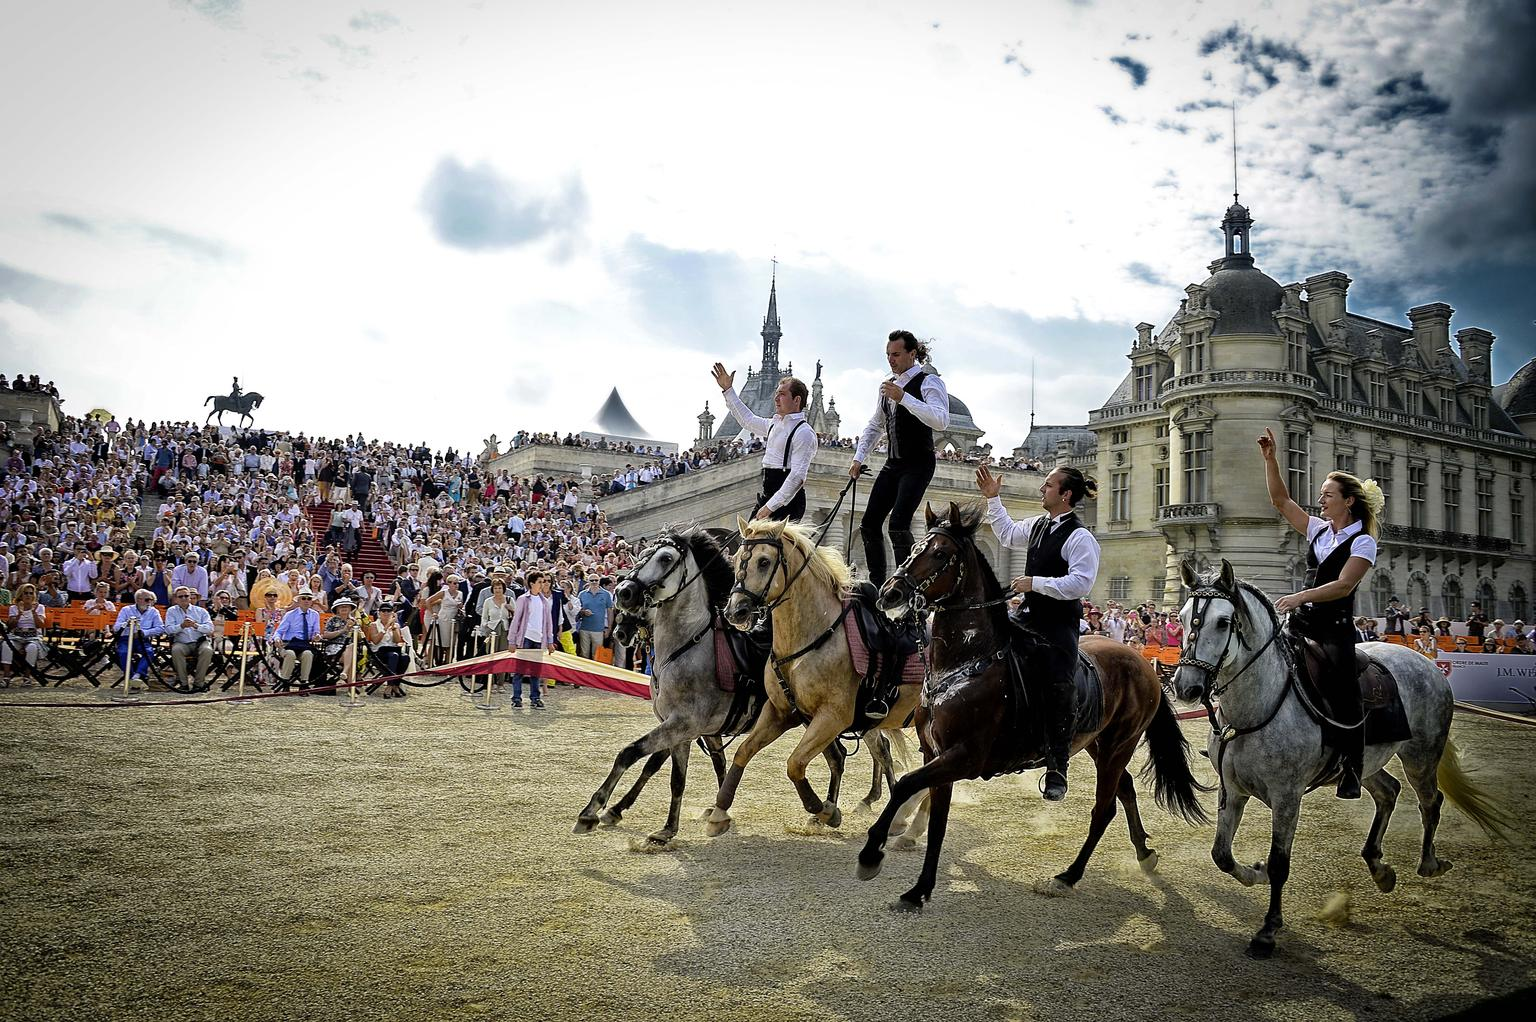 An earlier form of transport, the horse, was celebrated in a spectacular show of equestrian daring.